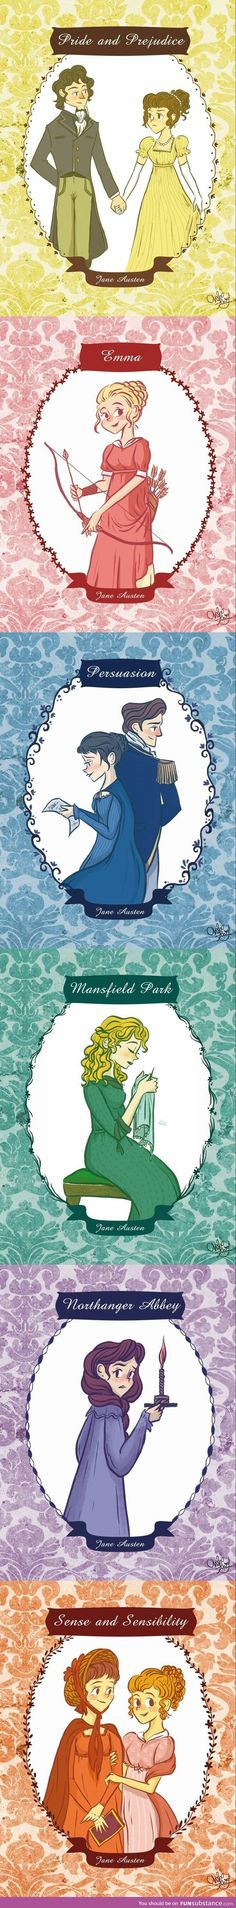 18 Best Animated Book Covers images Books to Read, Ya books, Book